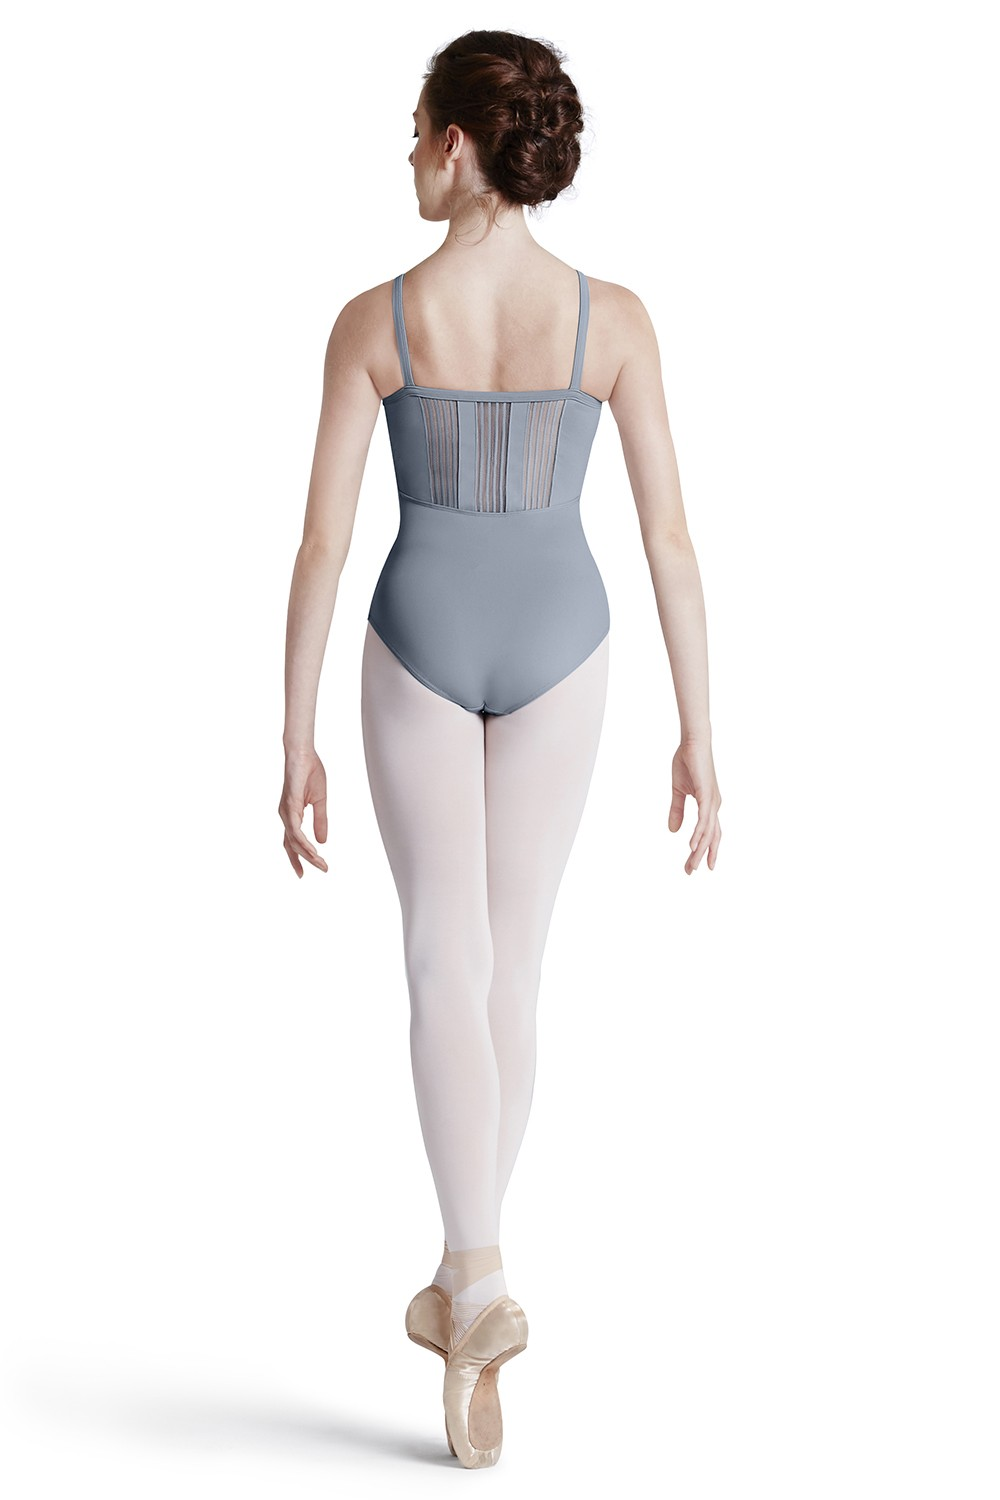 Body A Spallina Sottile Con Pannelli Sul Retro Women's Dance Leotards